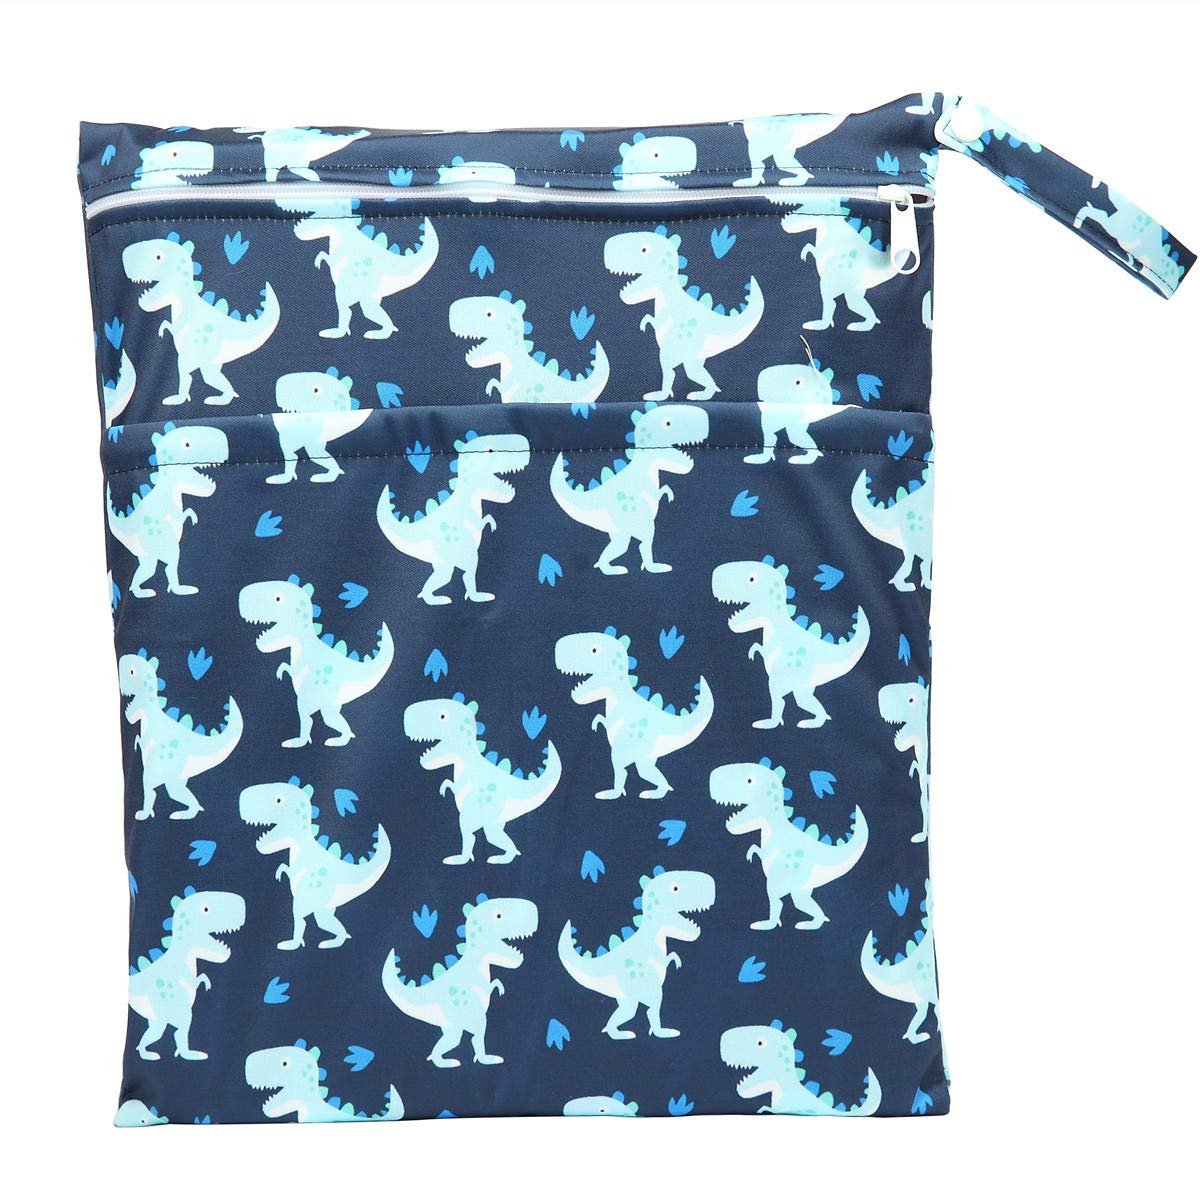 Wet Bag Baby Cloth Diaper Nappy Insert Reusable Two Tulsa Mall With Zip Great interest